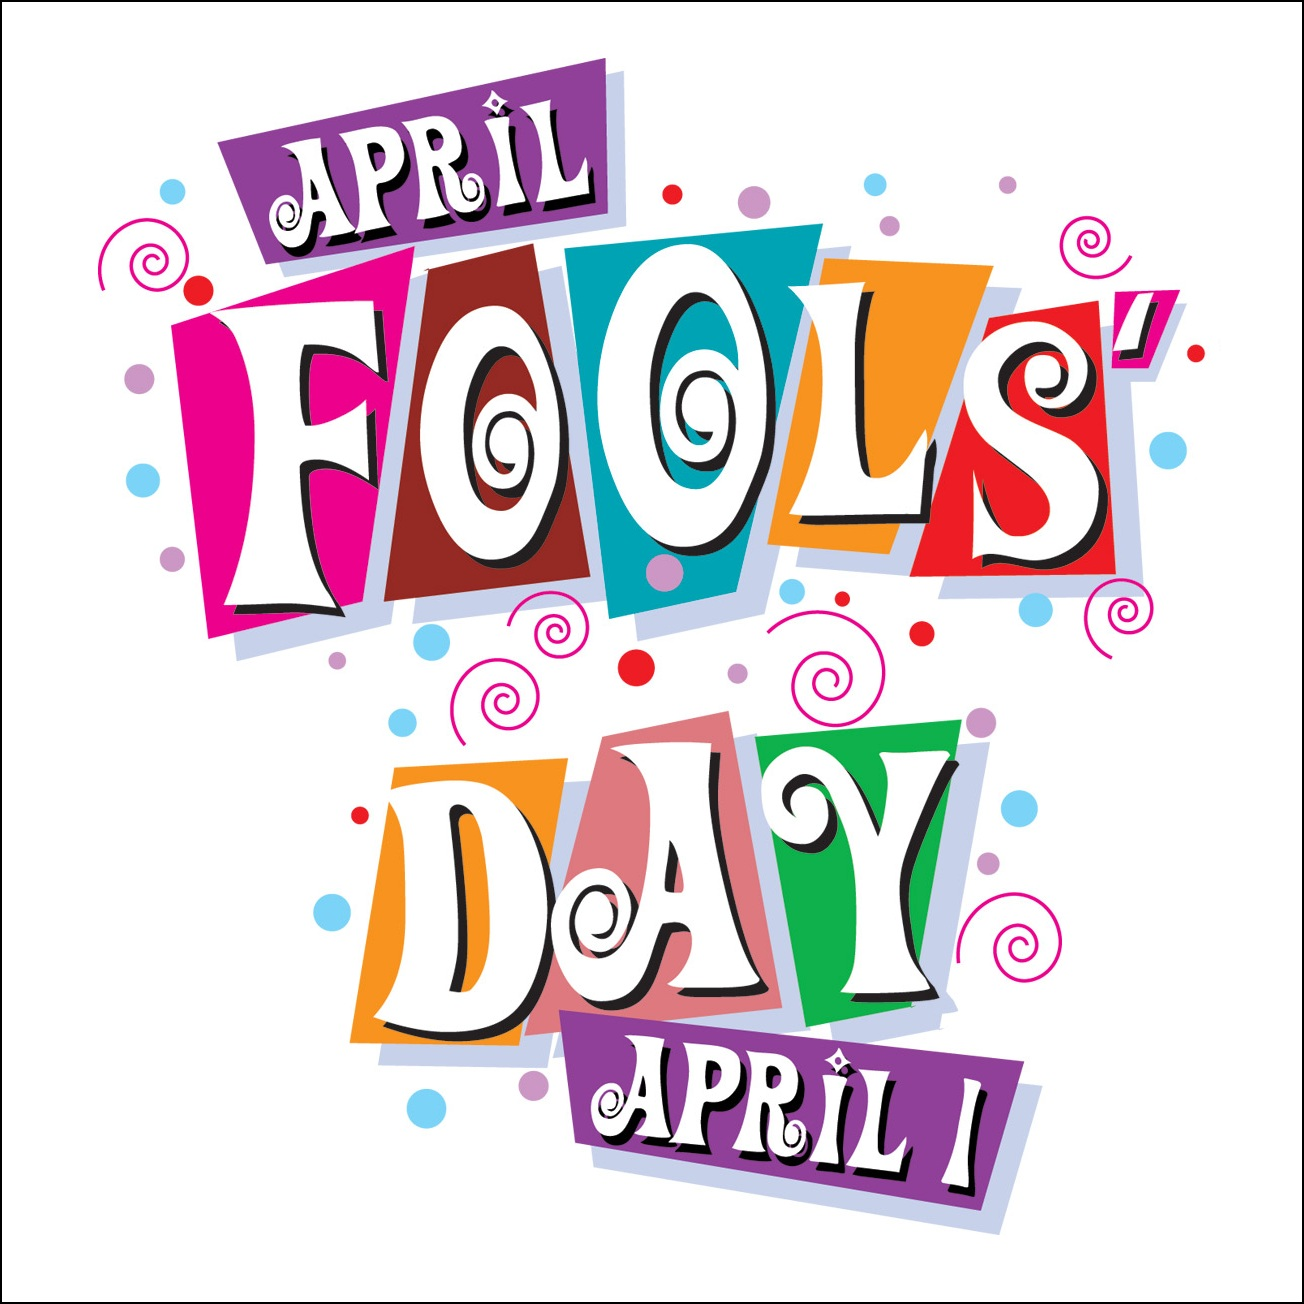 April Fool Sms Messages Prank Ideas Quotes And Wallpaperget Info